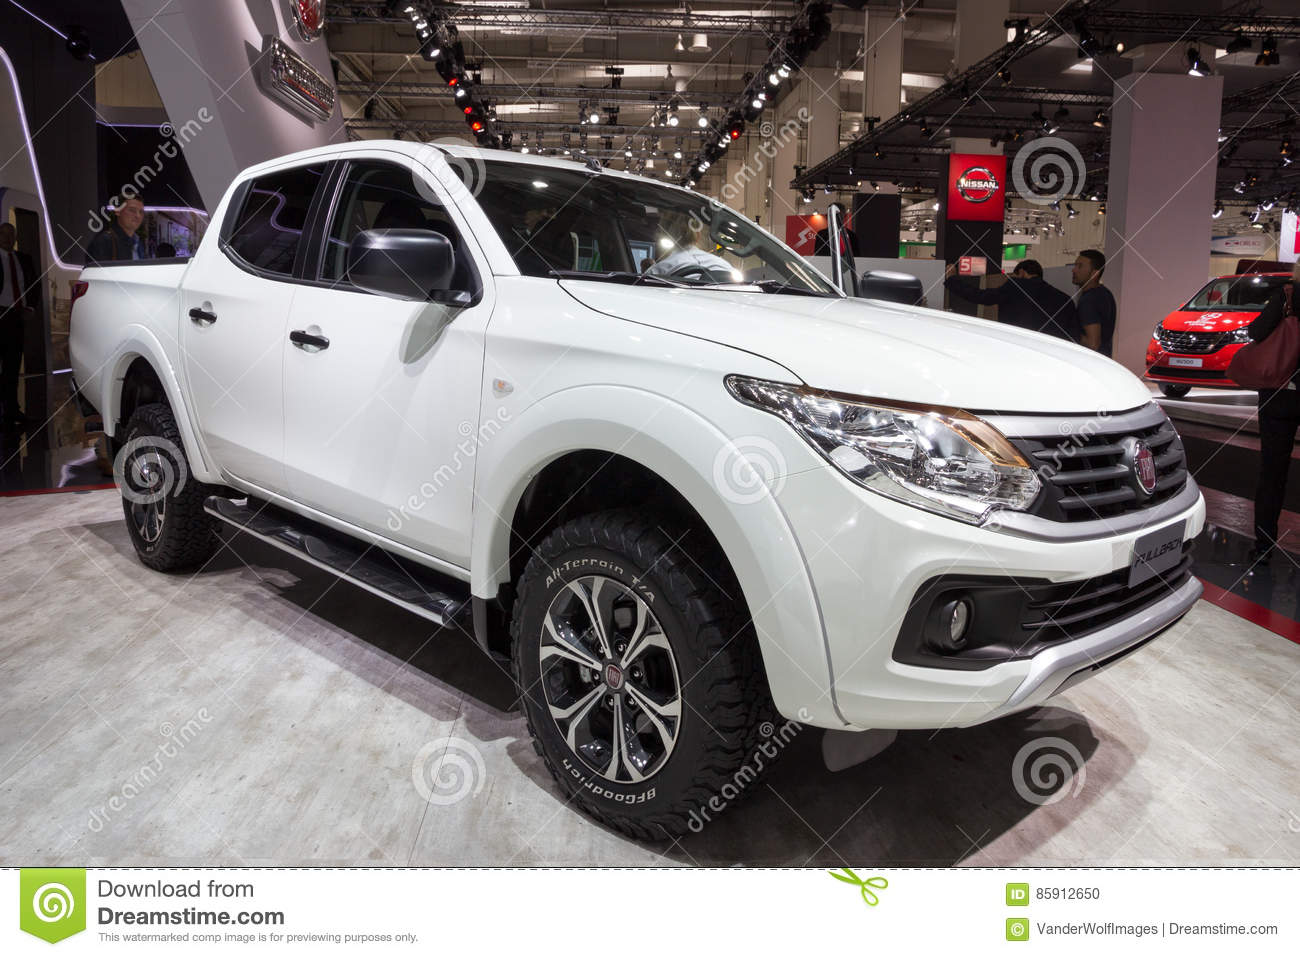 hannover, germany - sep 21, 2016: new 2017 fiat professional fullback  extended cab pick-up truck at the international motor show for commercial  vehicles